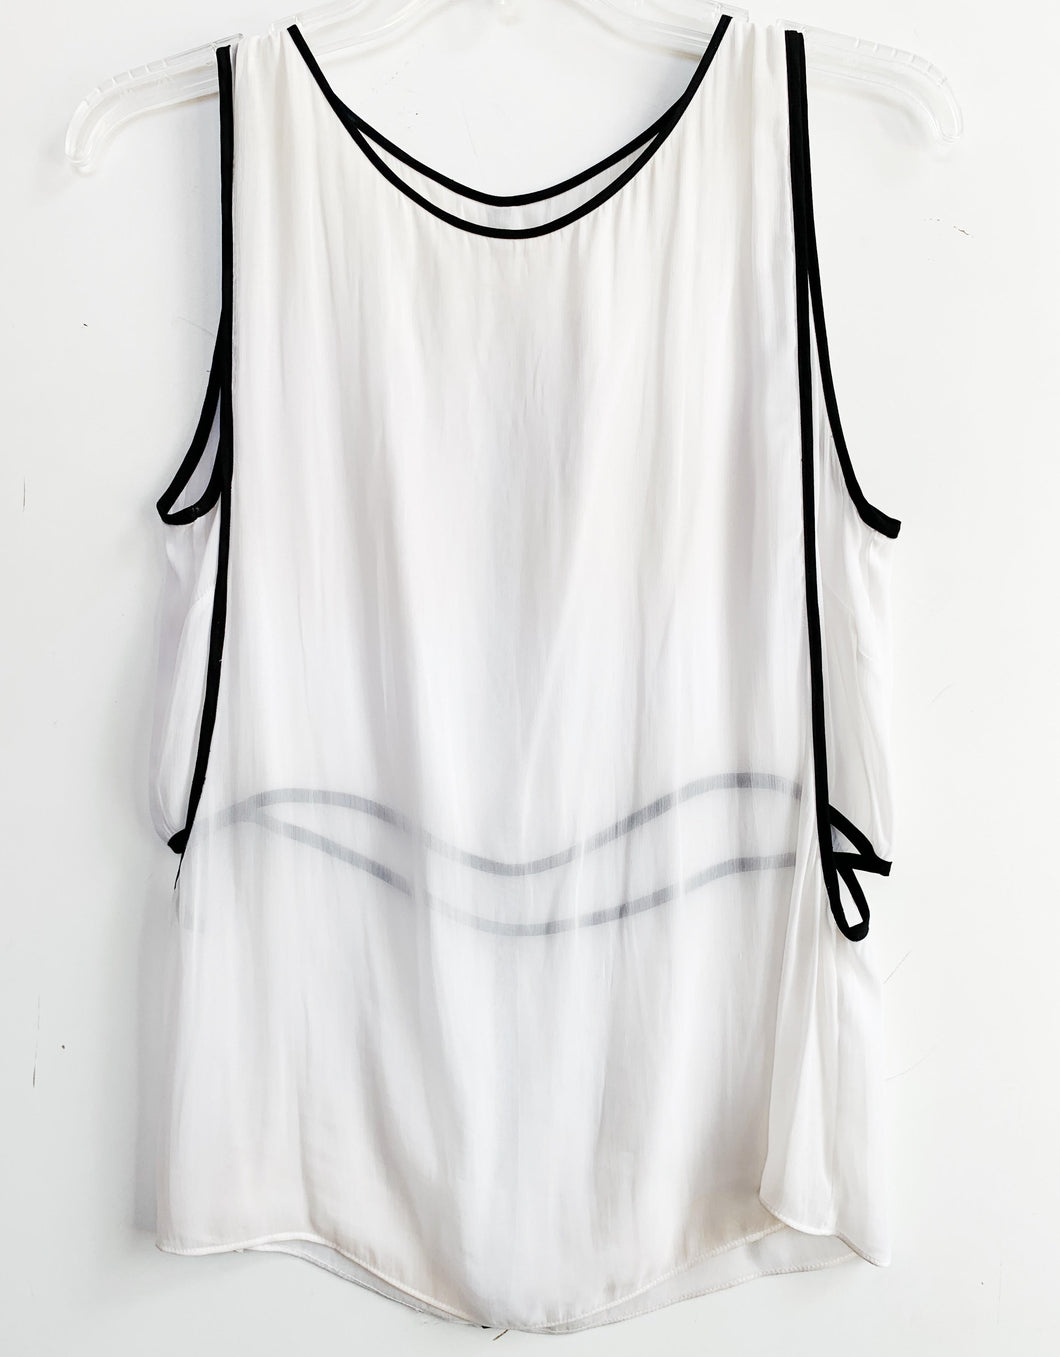 Helmut Lang Sleeveless Mesh Top Size S